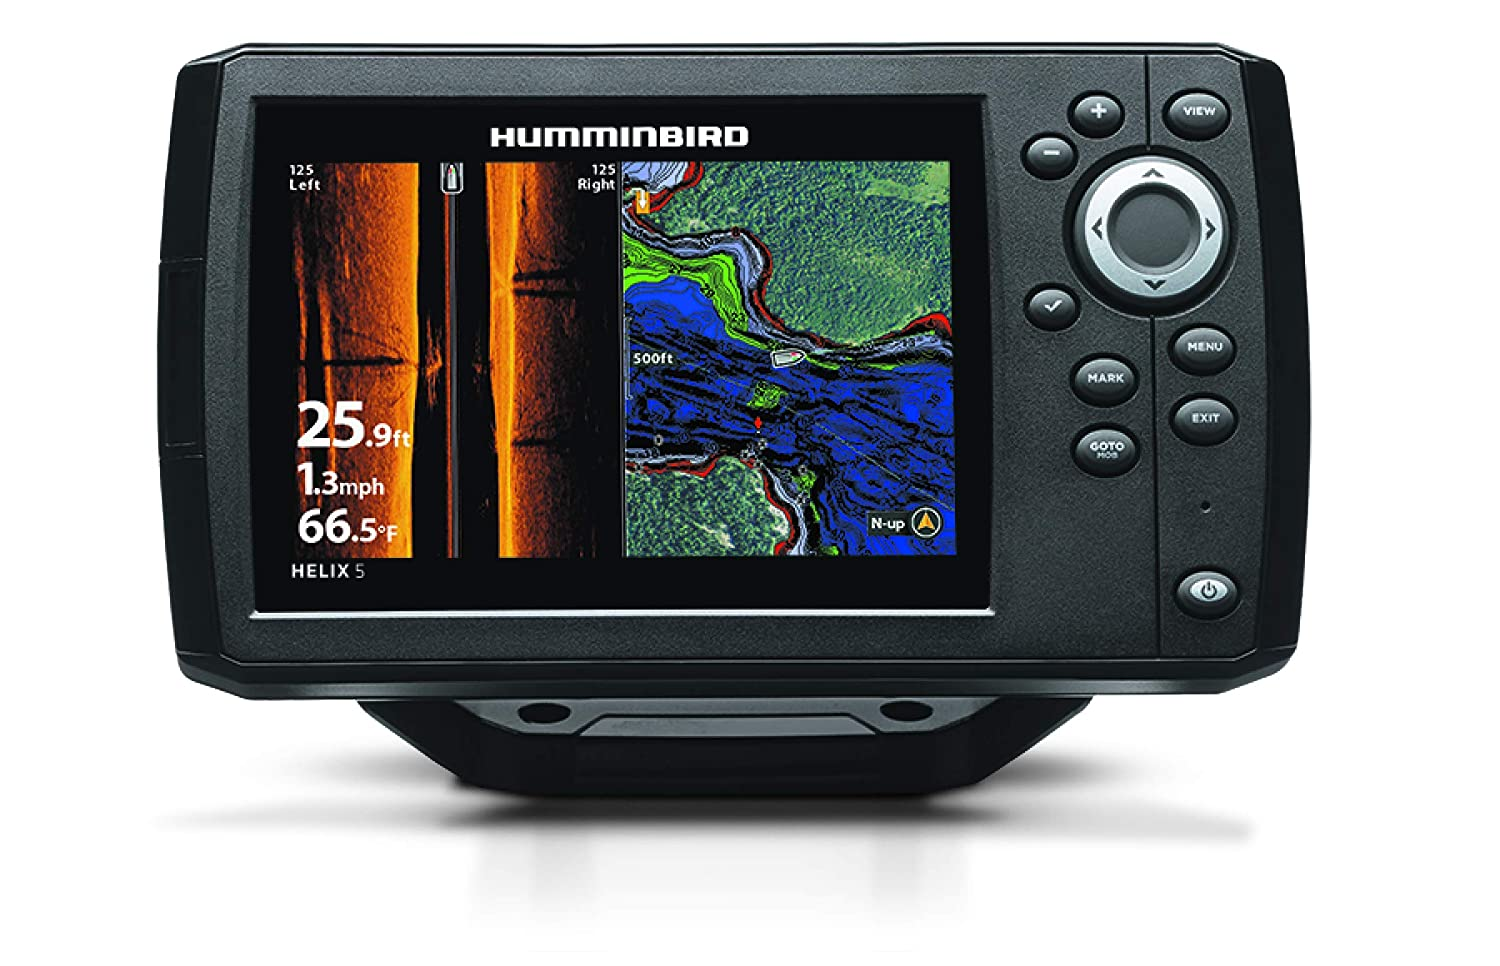 Image result for Humminbird-HELIX 5 CHIRP GPS G2 Fishfinder